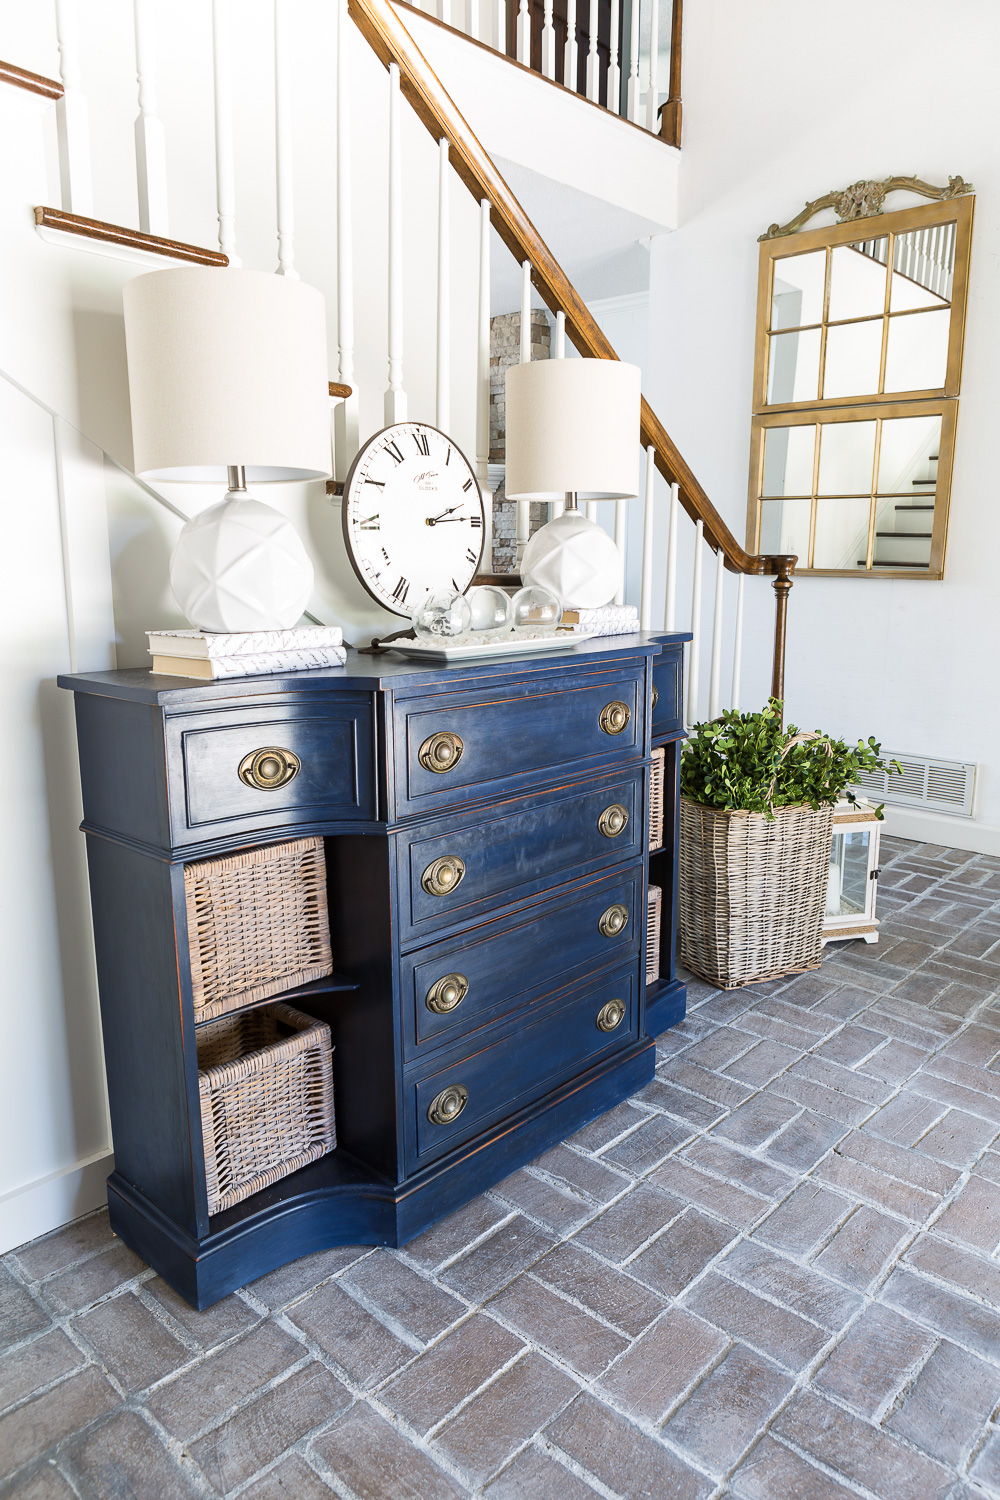 Entryway with whitewashed brick floor and navy blue chalk painted sideboard